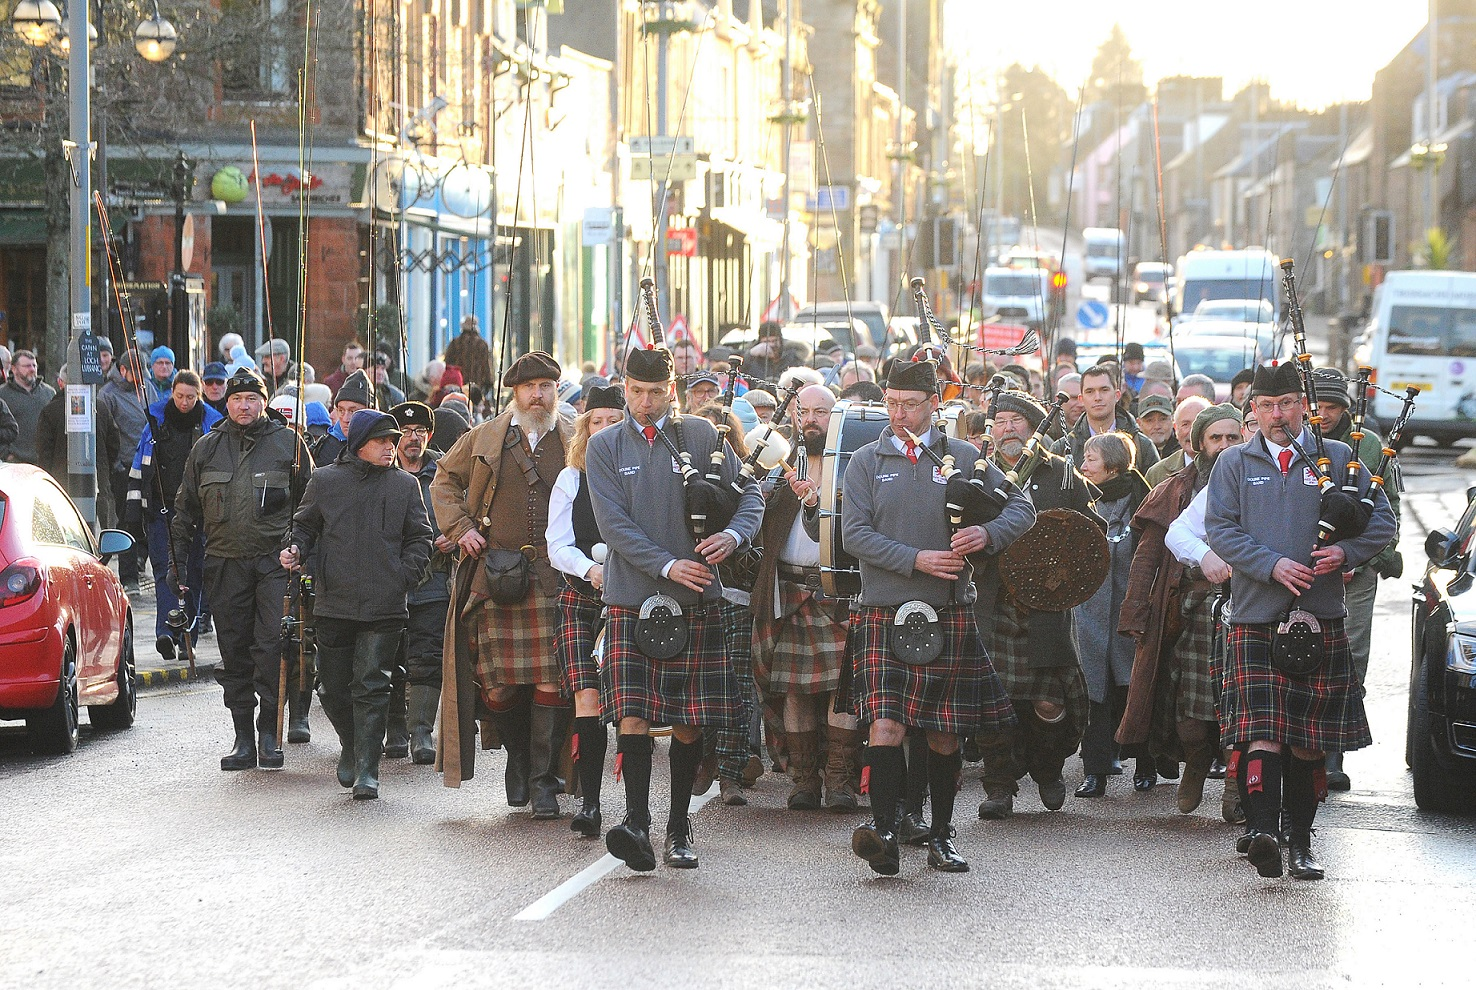 Pipers marching down Stirling City Center